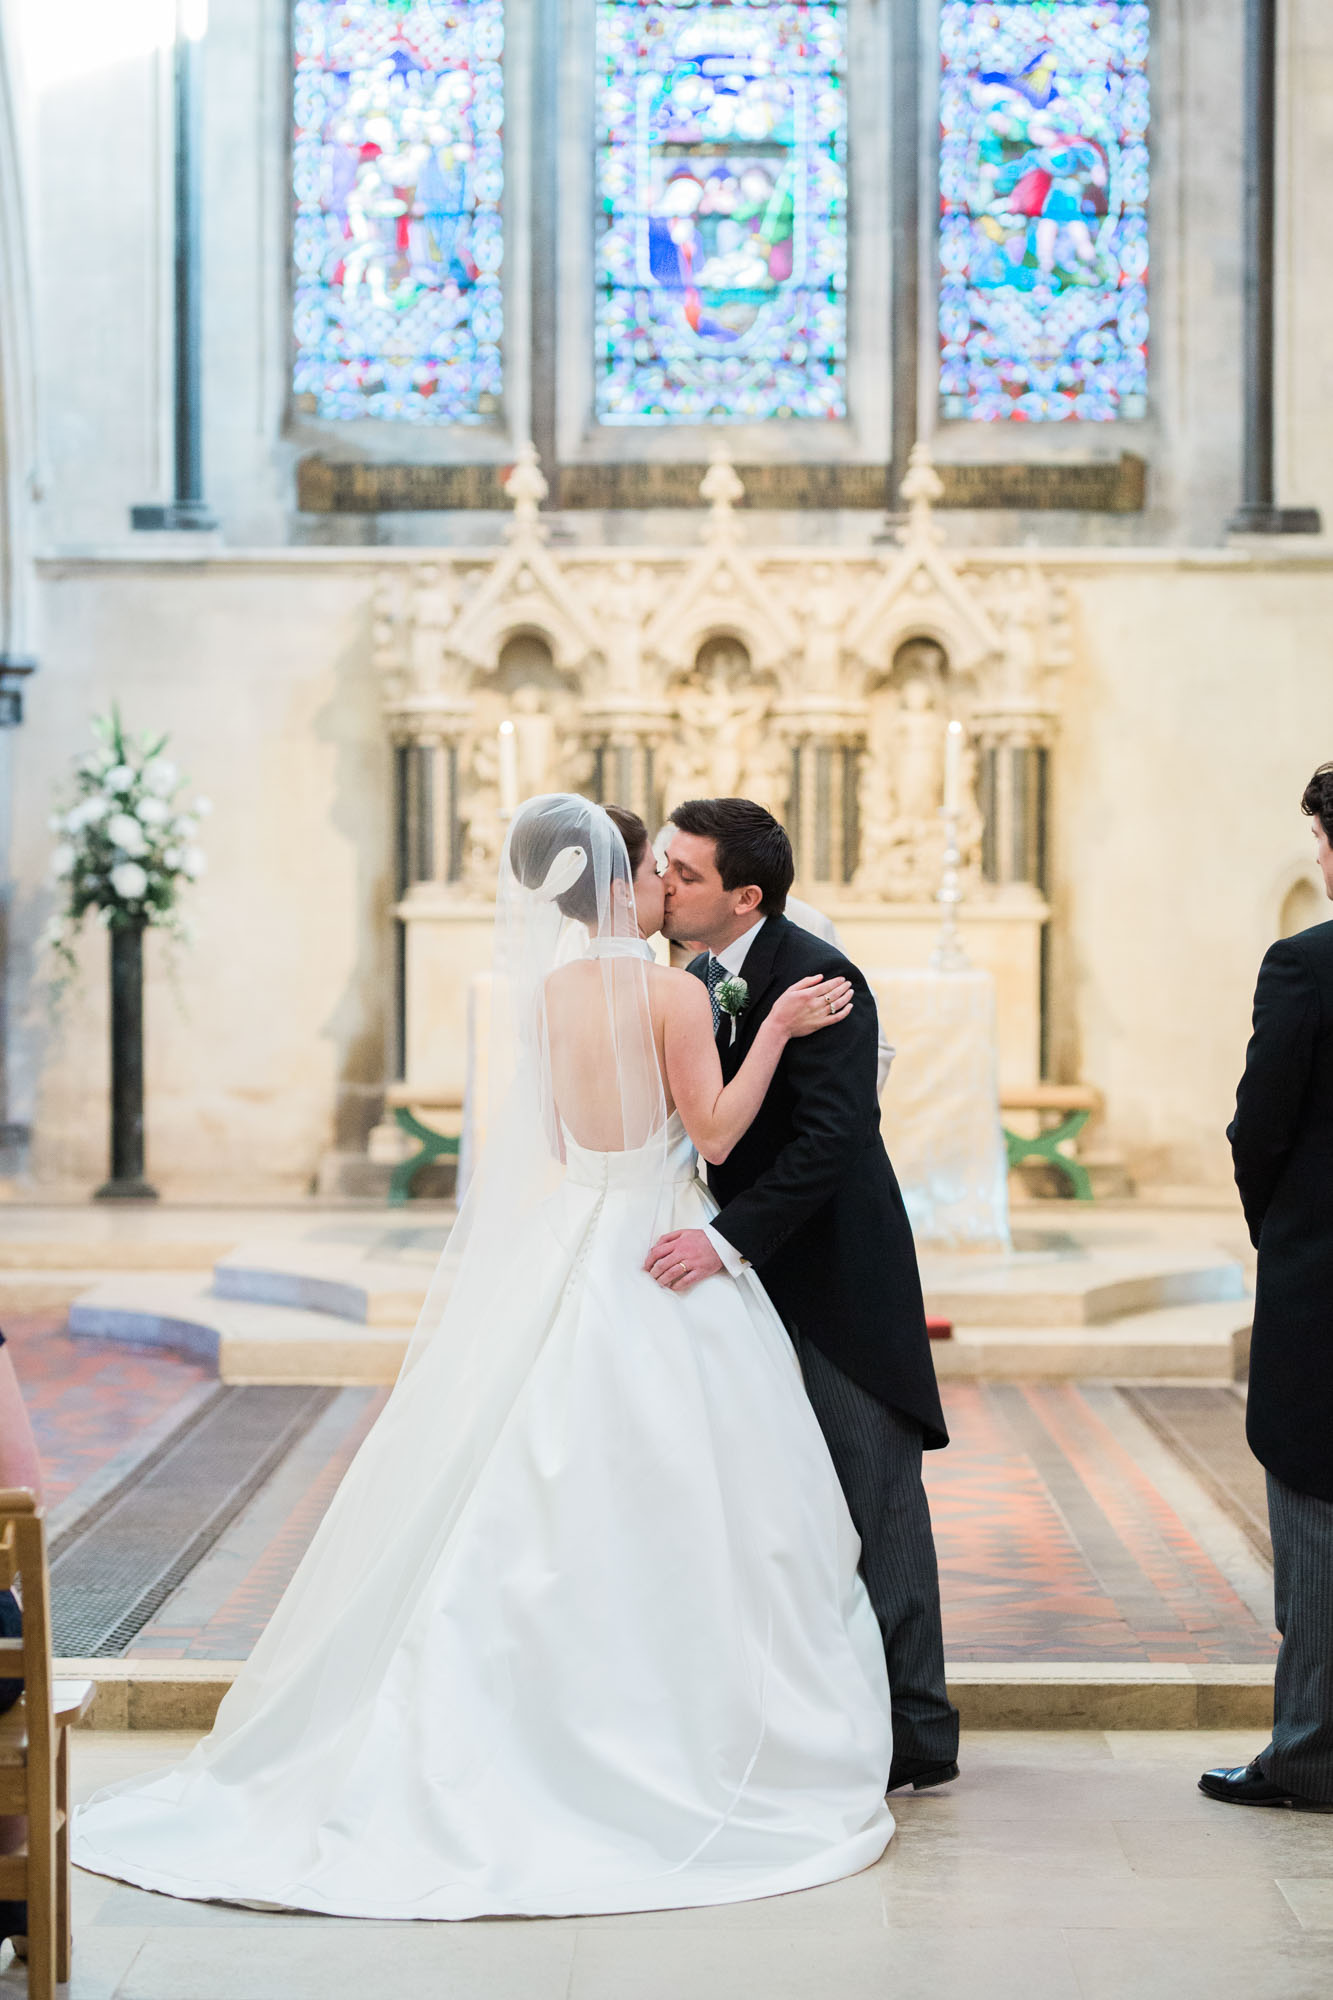 Bride and groom's first kiss at Boxgrove Priory wedding